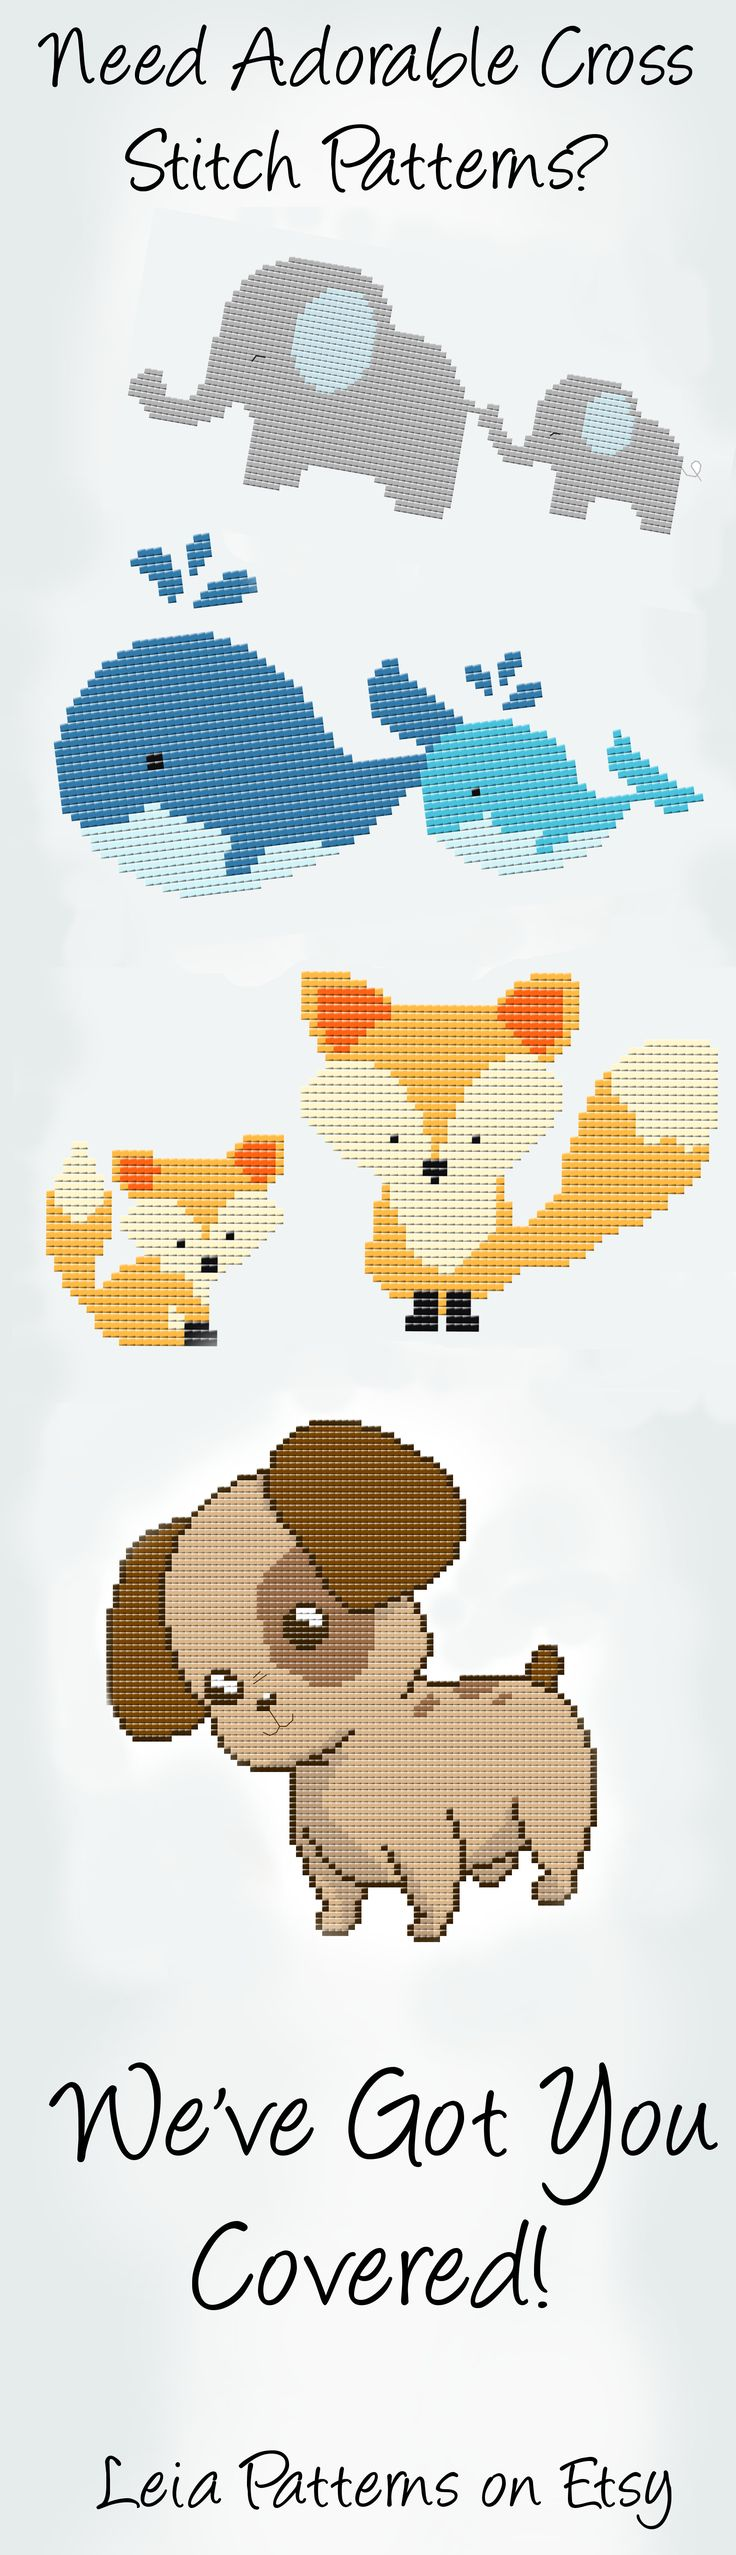 Find Cute Cross Stitch Patterns at LeiaPatterns Elephants, Whales, Foxes, Puppies, and much more! These counted cross stitch patterns are simple and perfect for nurseries, baby decor, or for everyday cross stitching! https://www.leiapatterns.com/products/cross-stitch-patterns-cute-animals-mama-baby-animals-counted-cross-stitch-pattern-pdf-instant-download